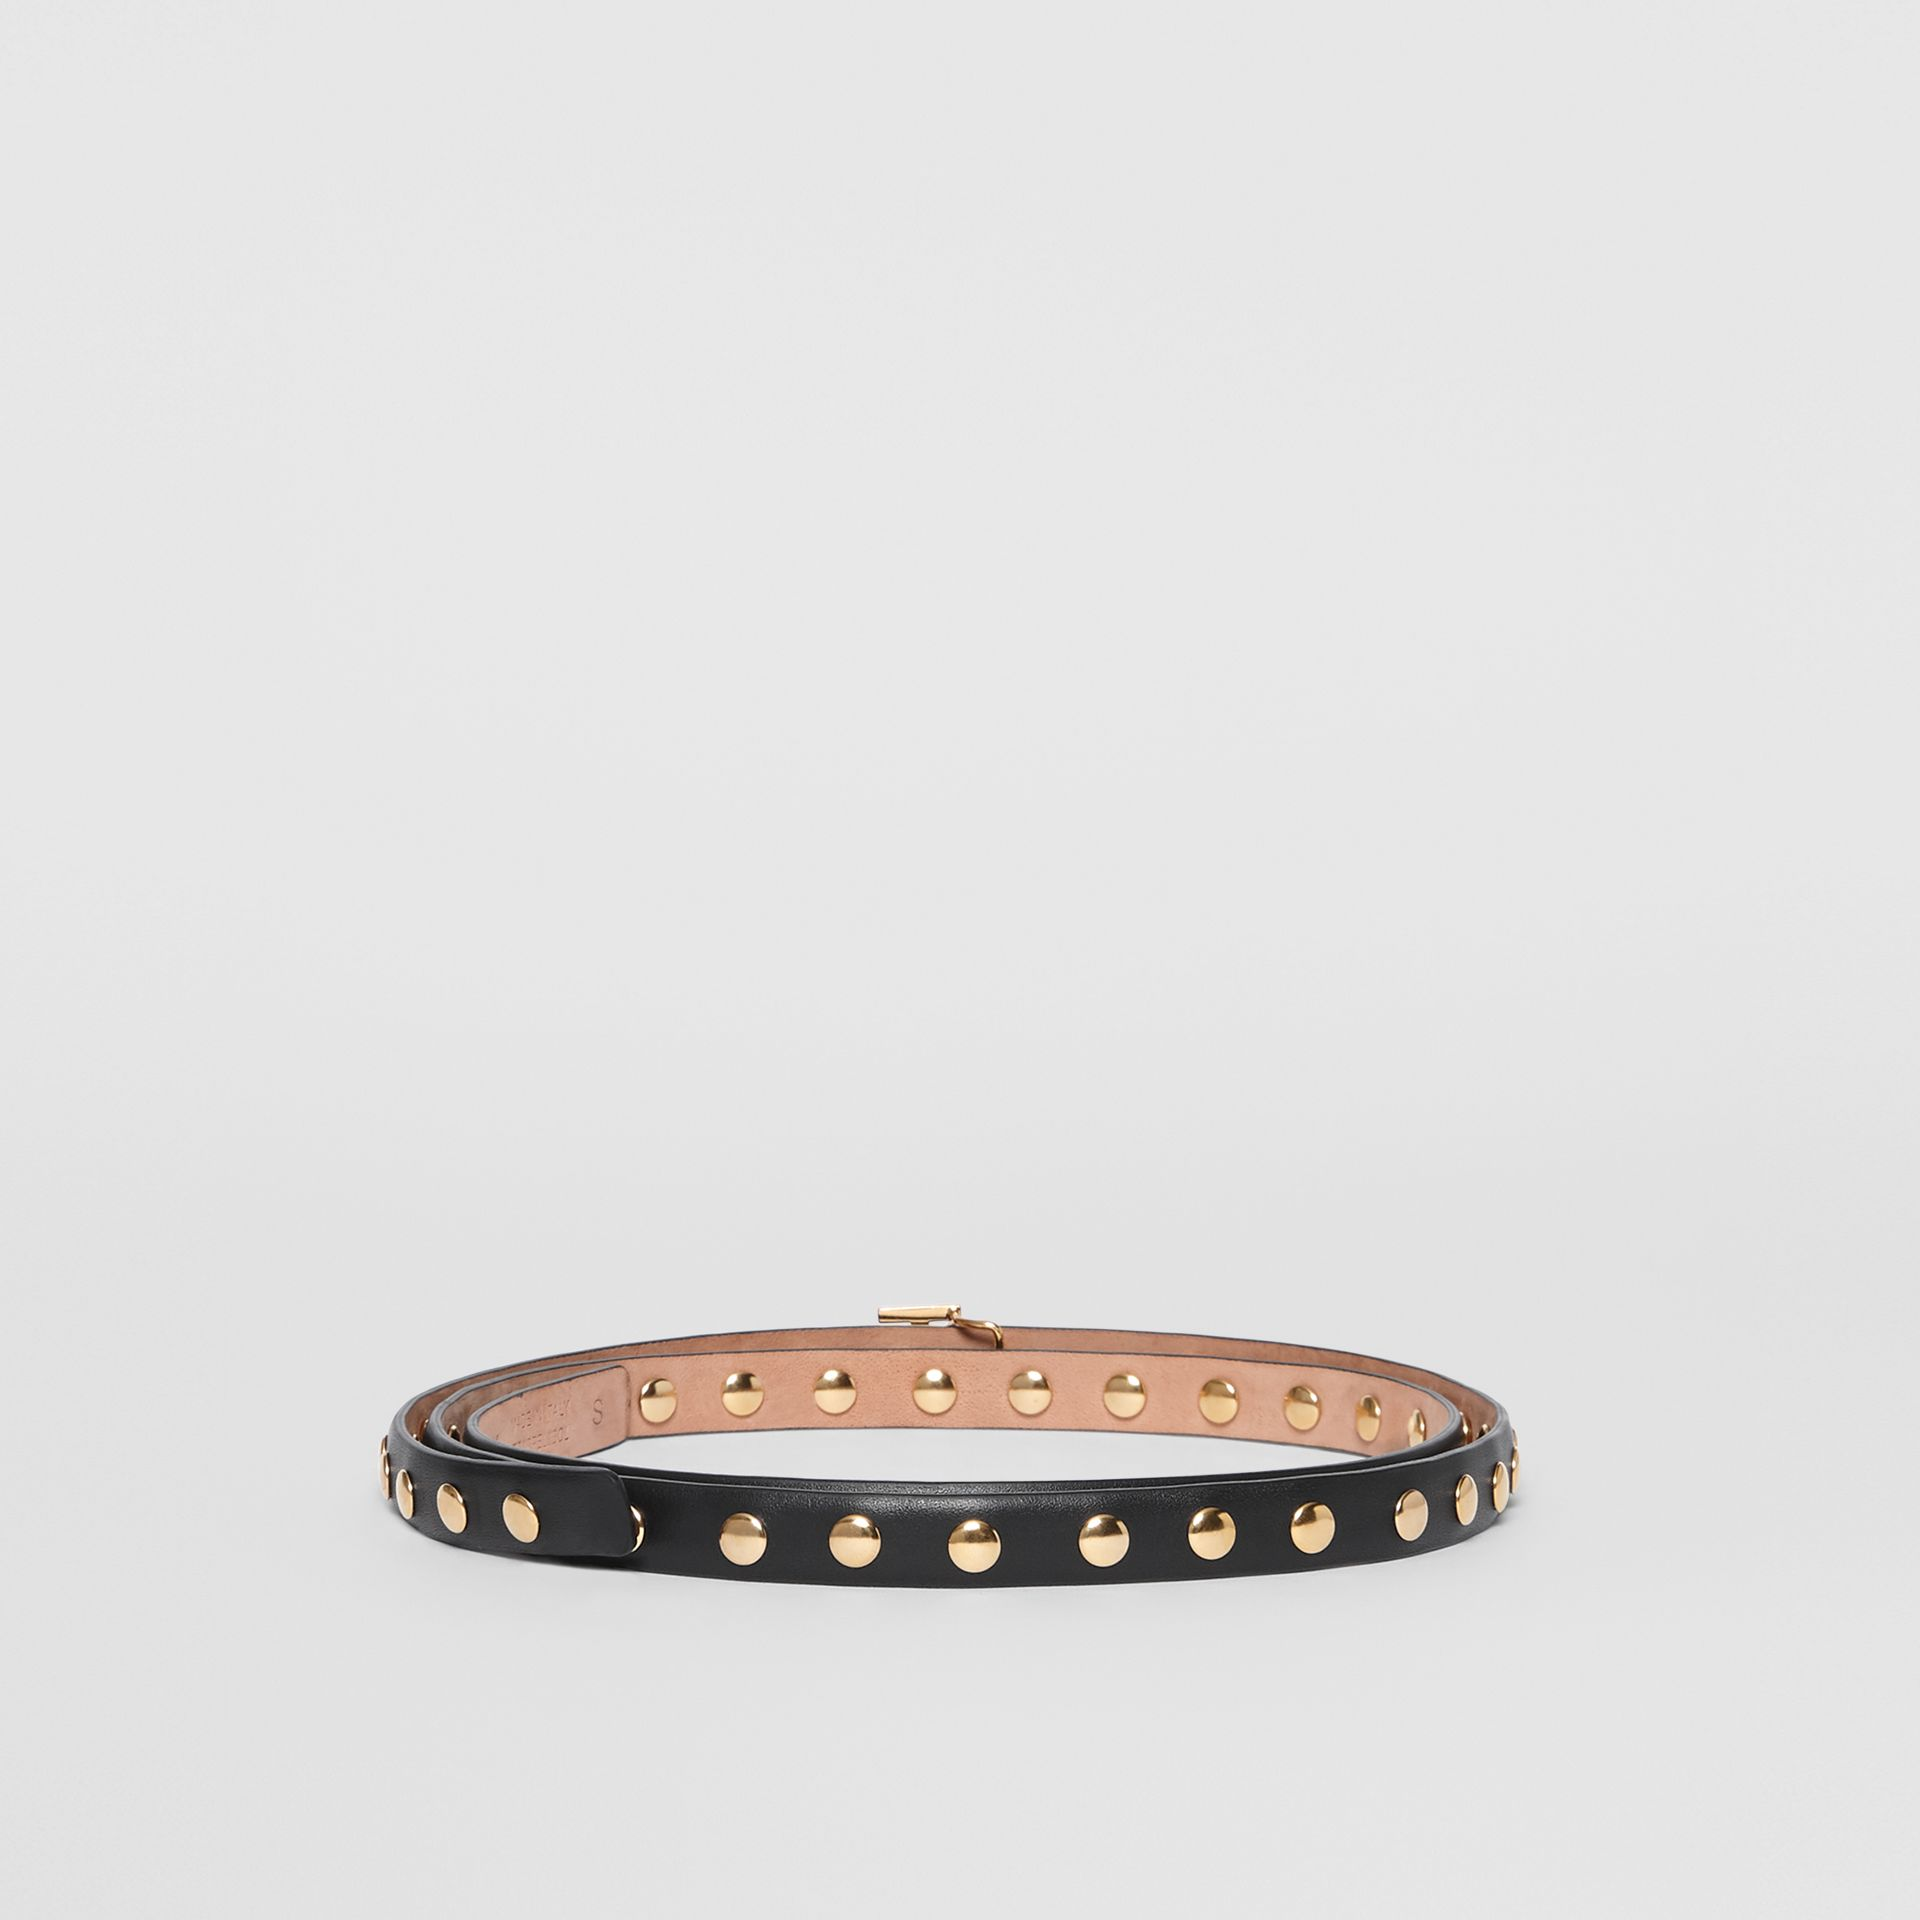 Monogram Motif Studded Leather Belt in Black/light Gold - Women | Burberry - gallery image 4